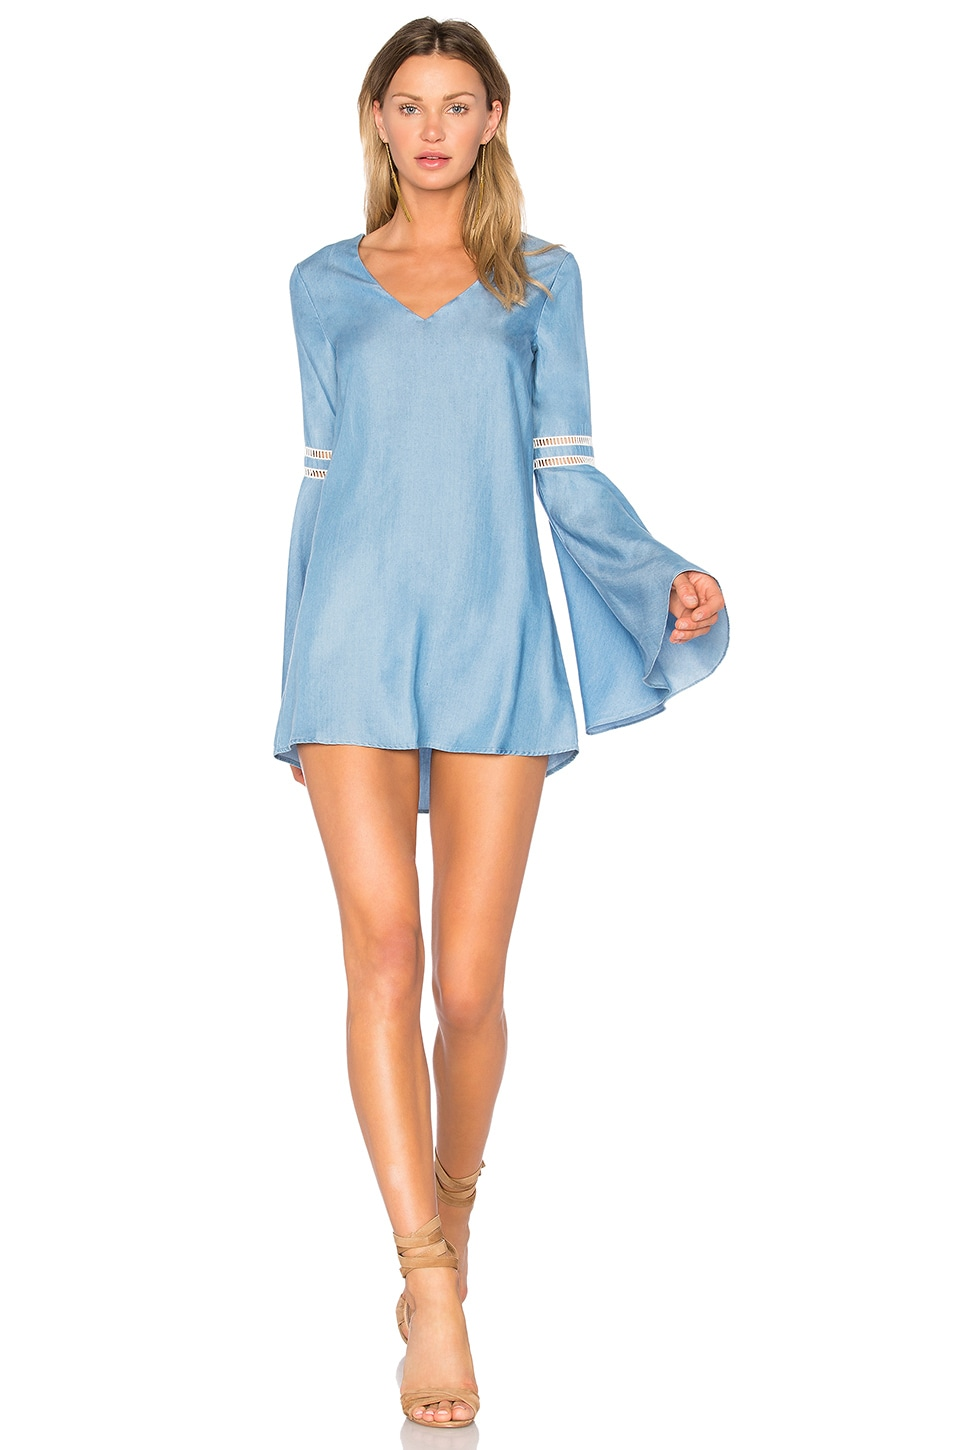 Lovers + Friends x REVOLVE Seawater Dress in Ocean